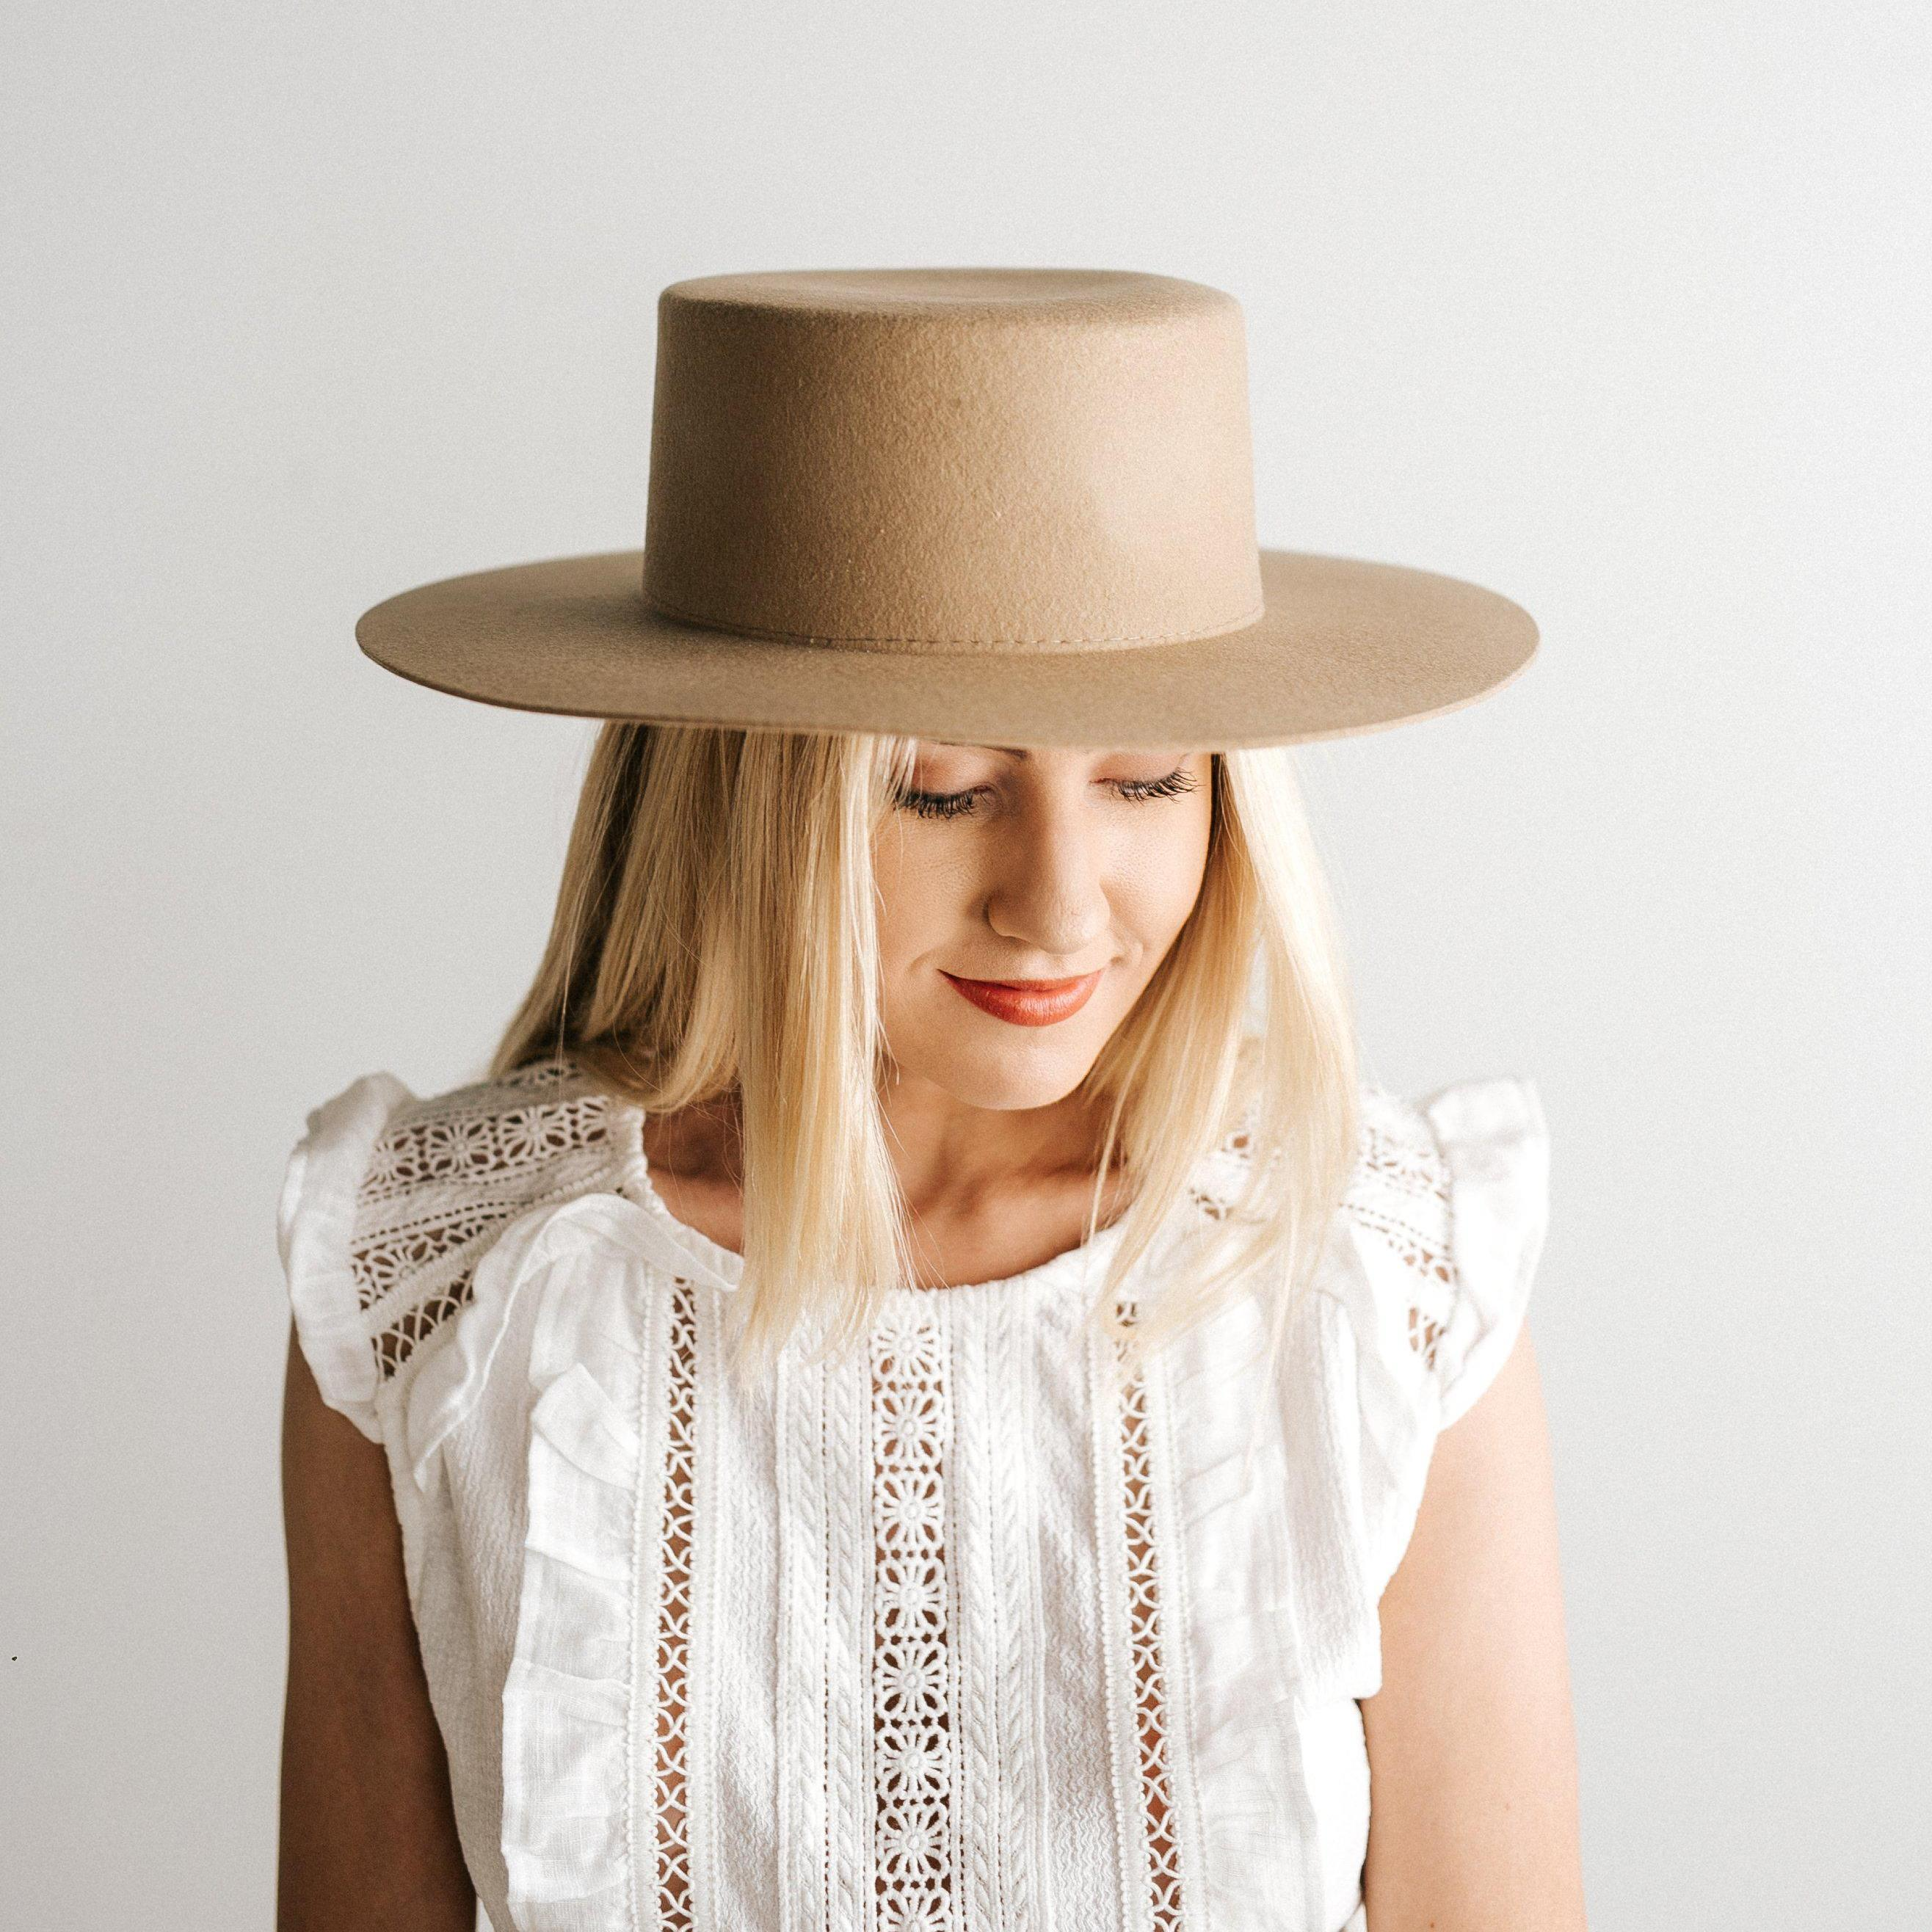 THE DAHLIA TAN - WOMEN'S BOATER HAT - GIGI PIP